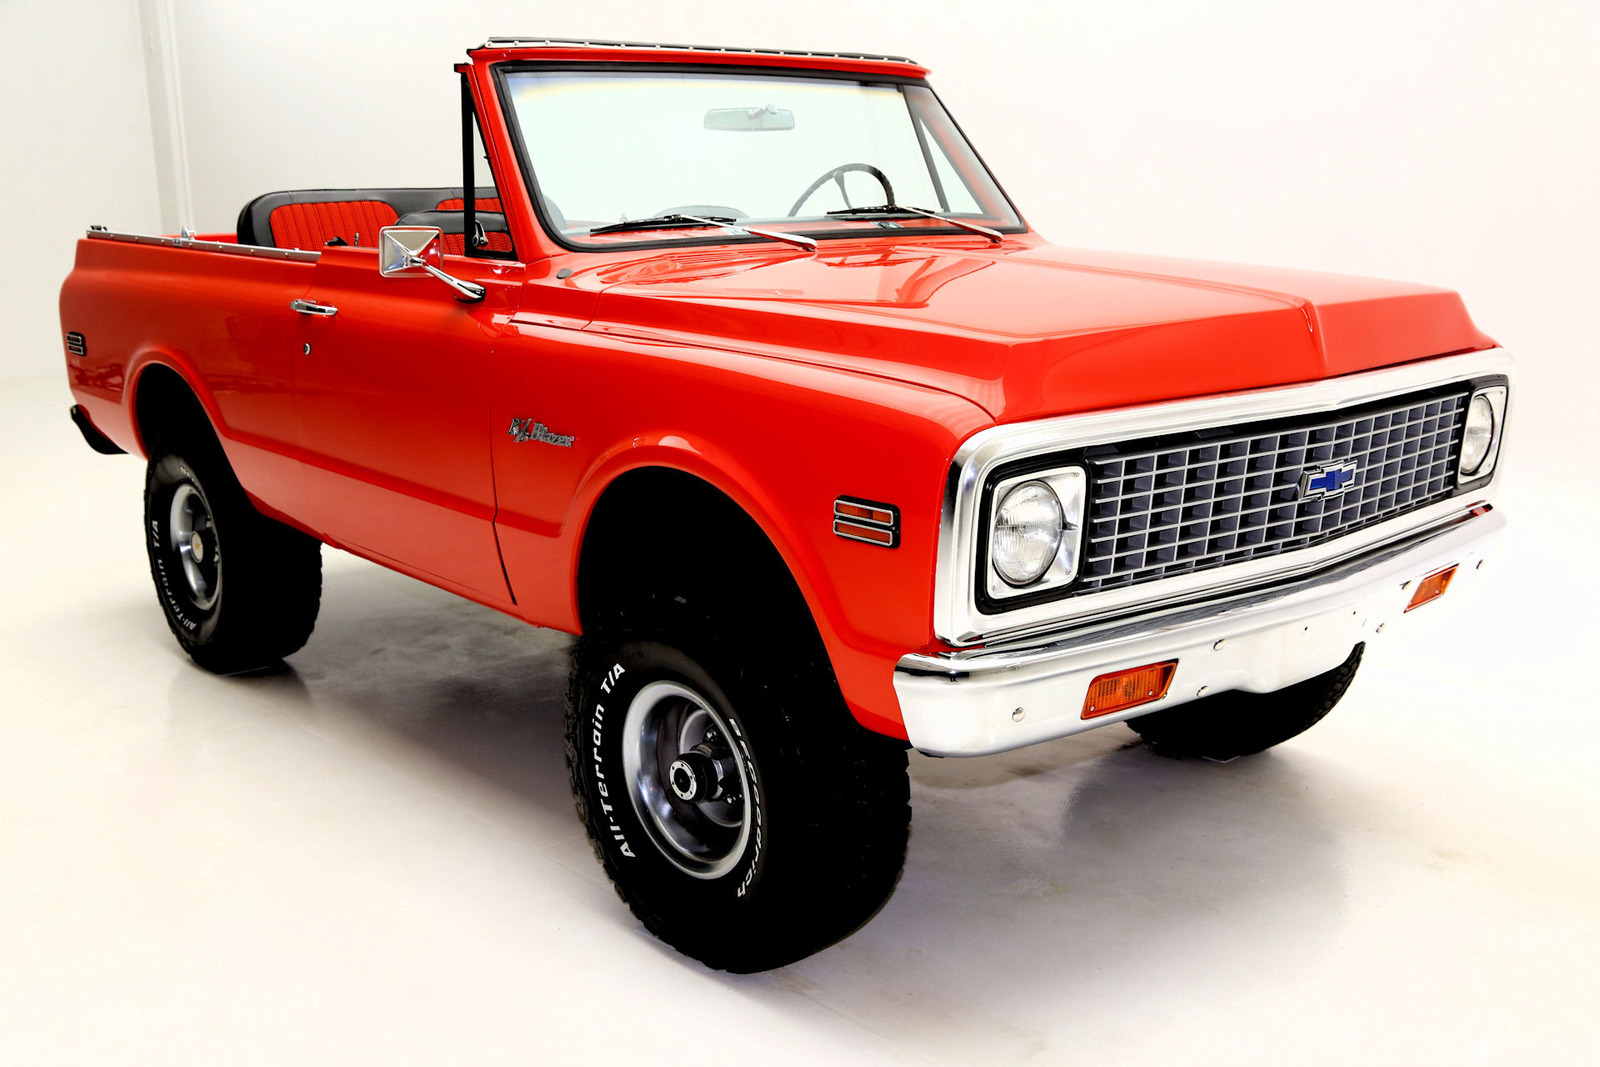 Primary image for 1972 Chevrolet Blazer K5 | 24 X 36 inch poster